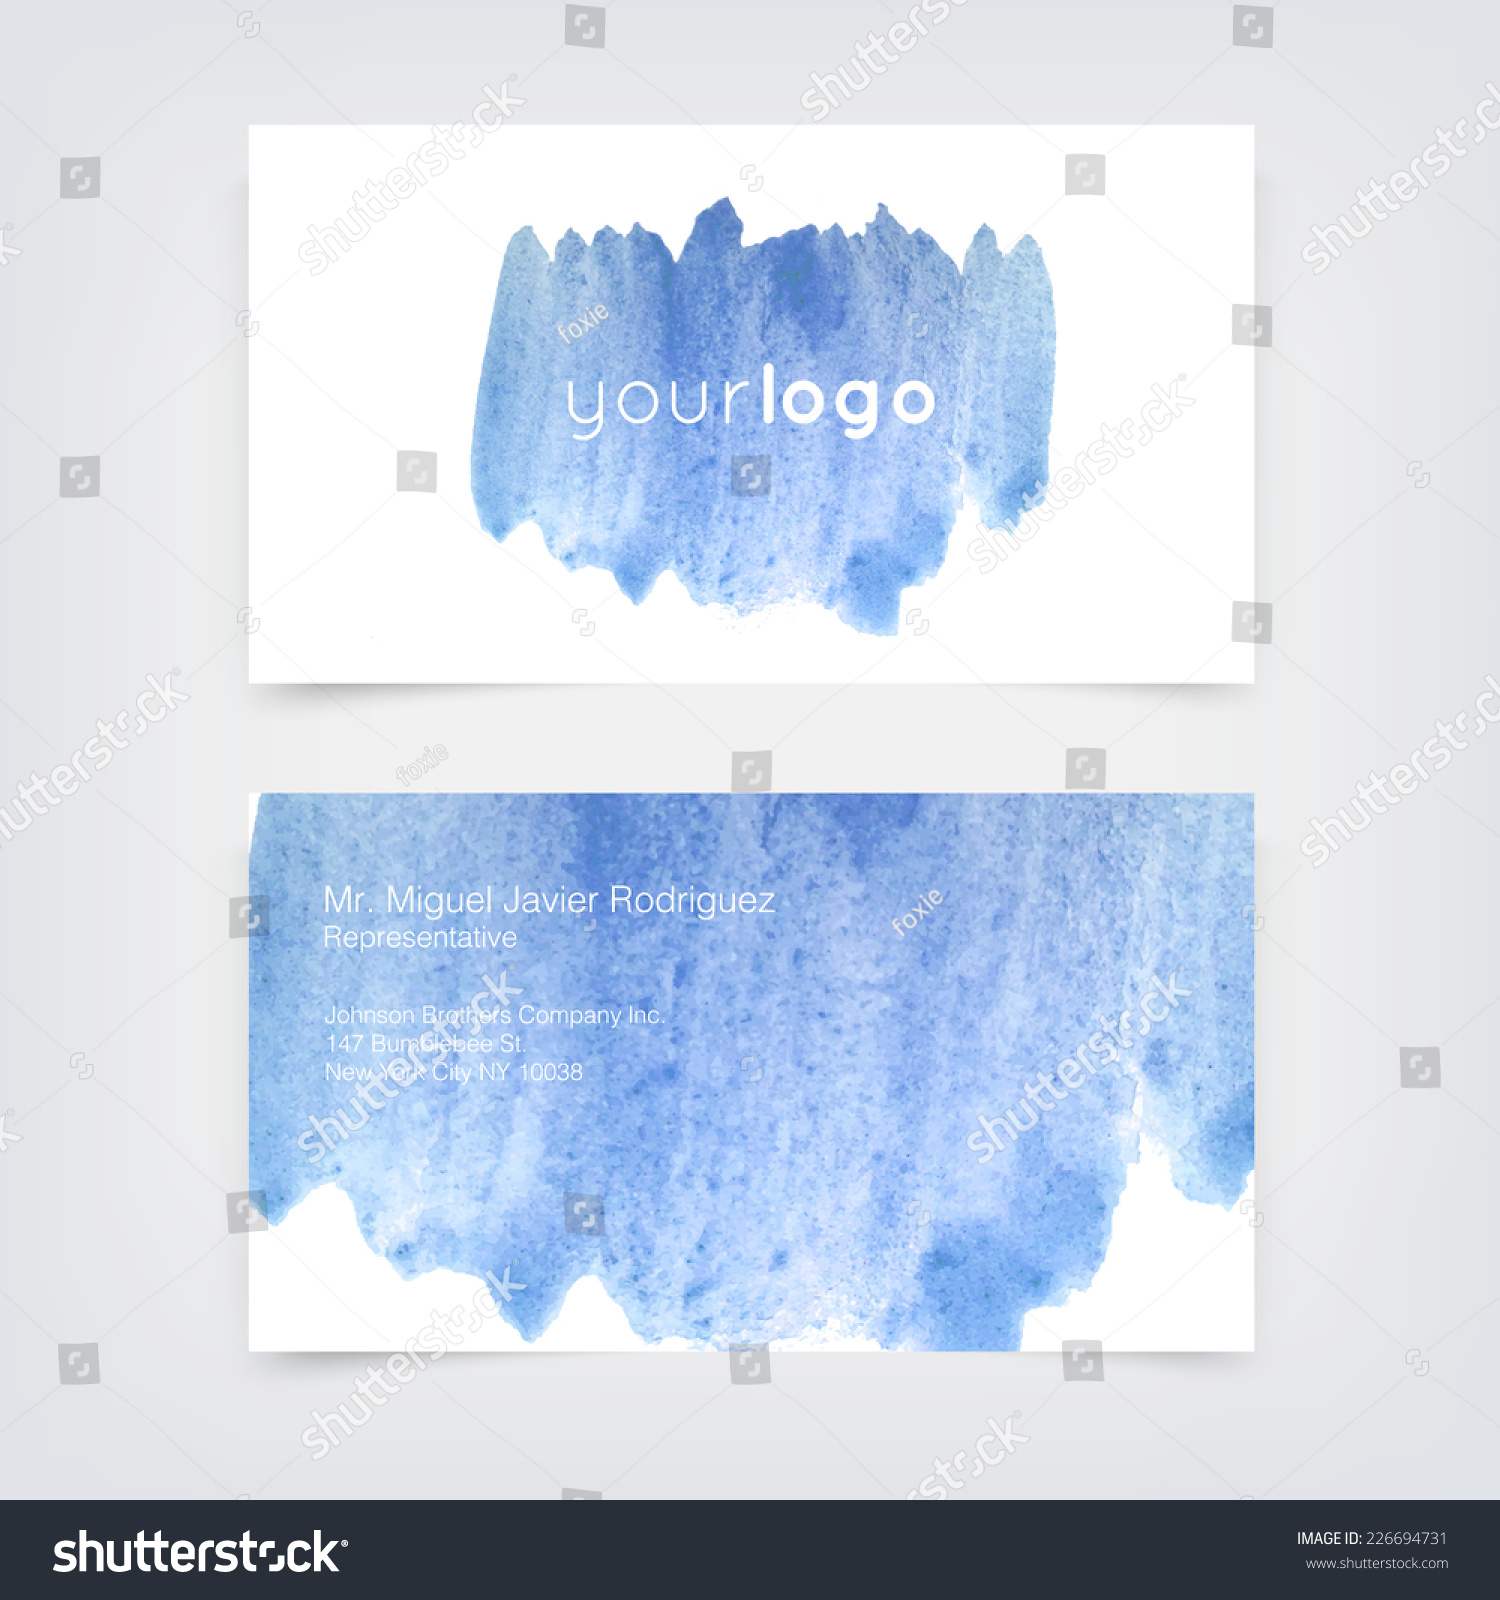 Vector Business Card Design Template Blue Stock Vector